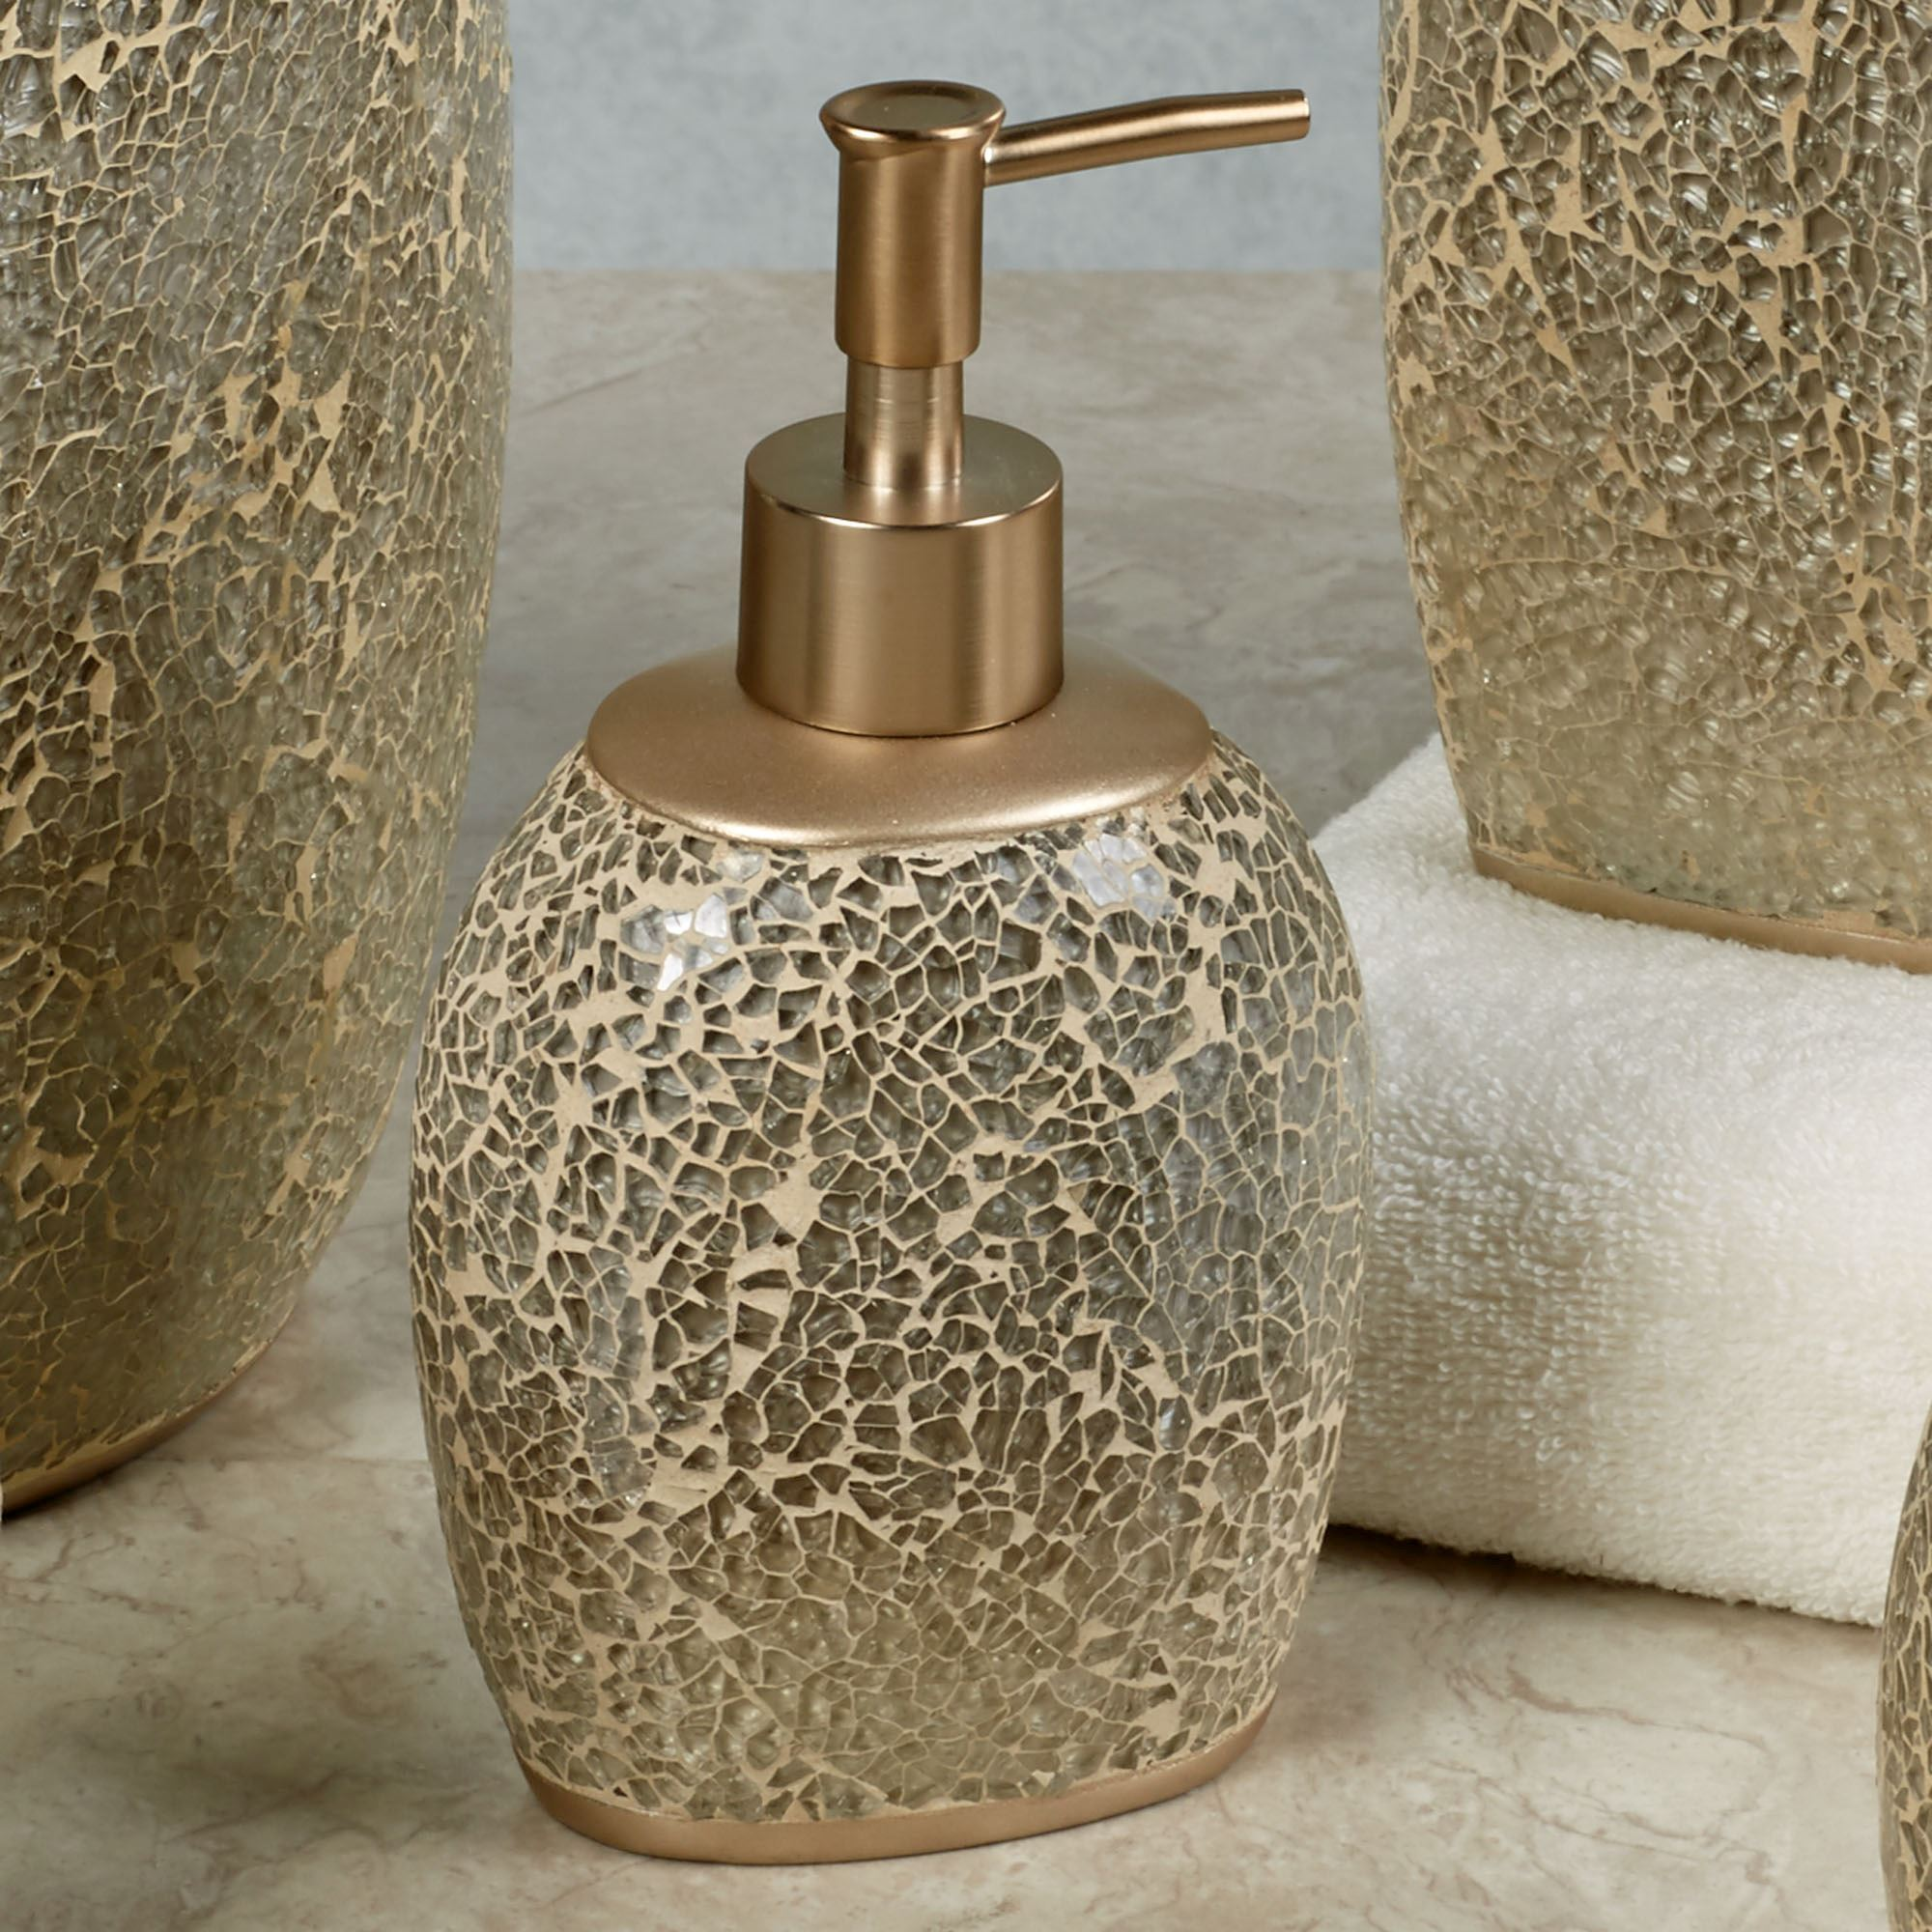 Huntington Champagne Mosaic Bath Accessories